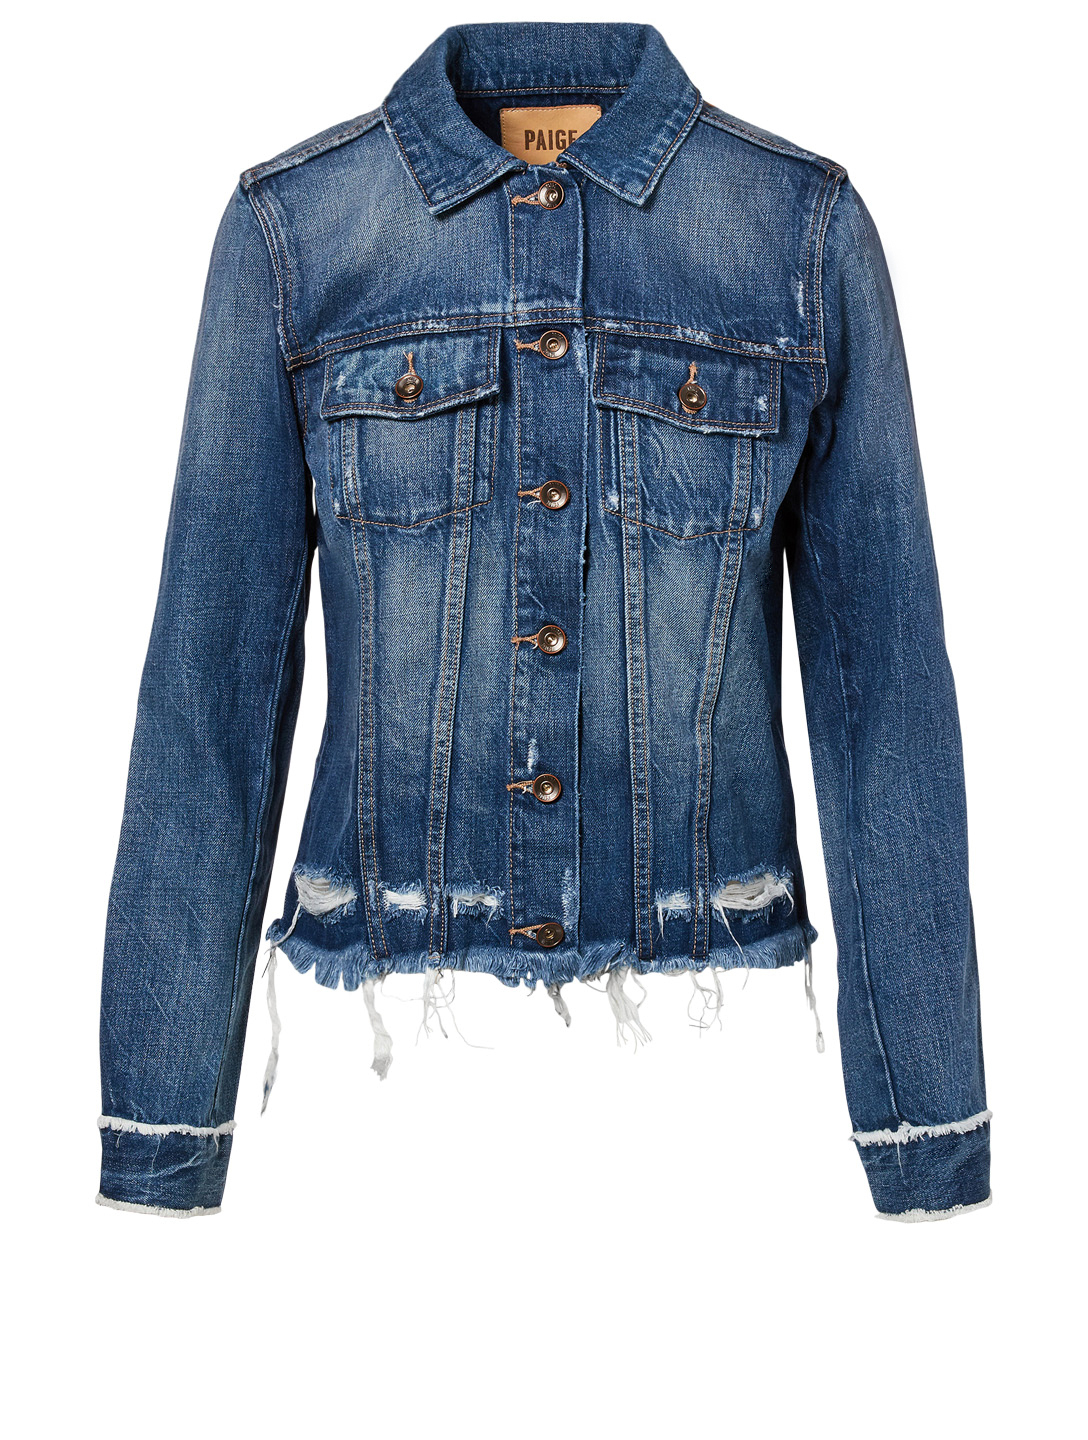 97ab3aca3bc2 PAIGE Rowan Jean Jacket With Fray Hem | Holt Renfrew